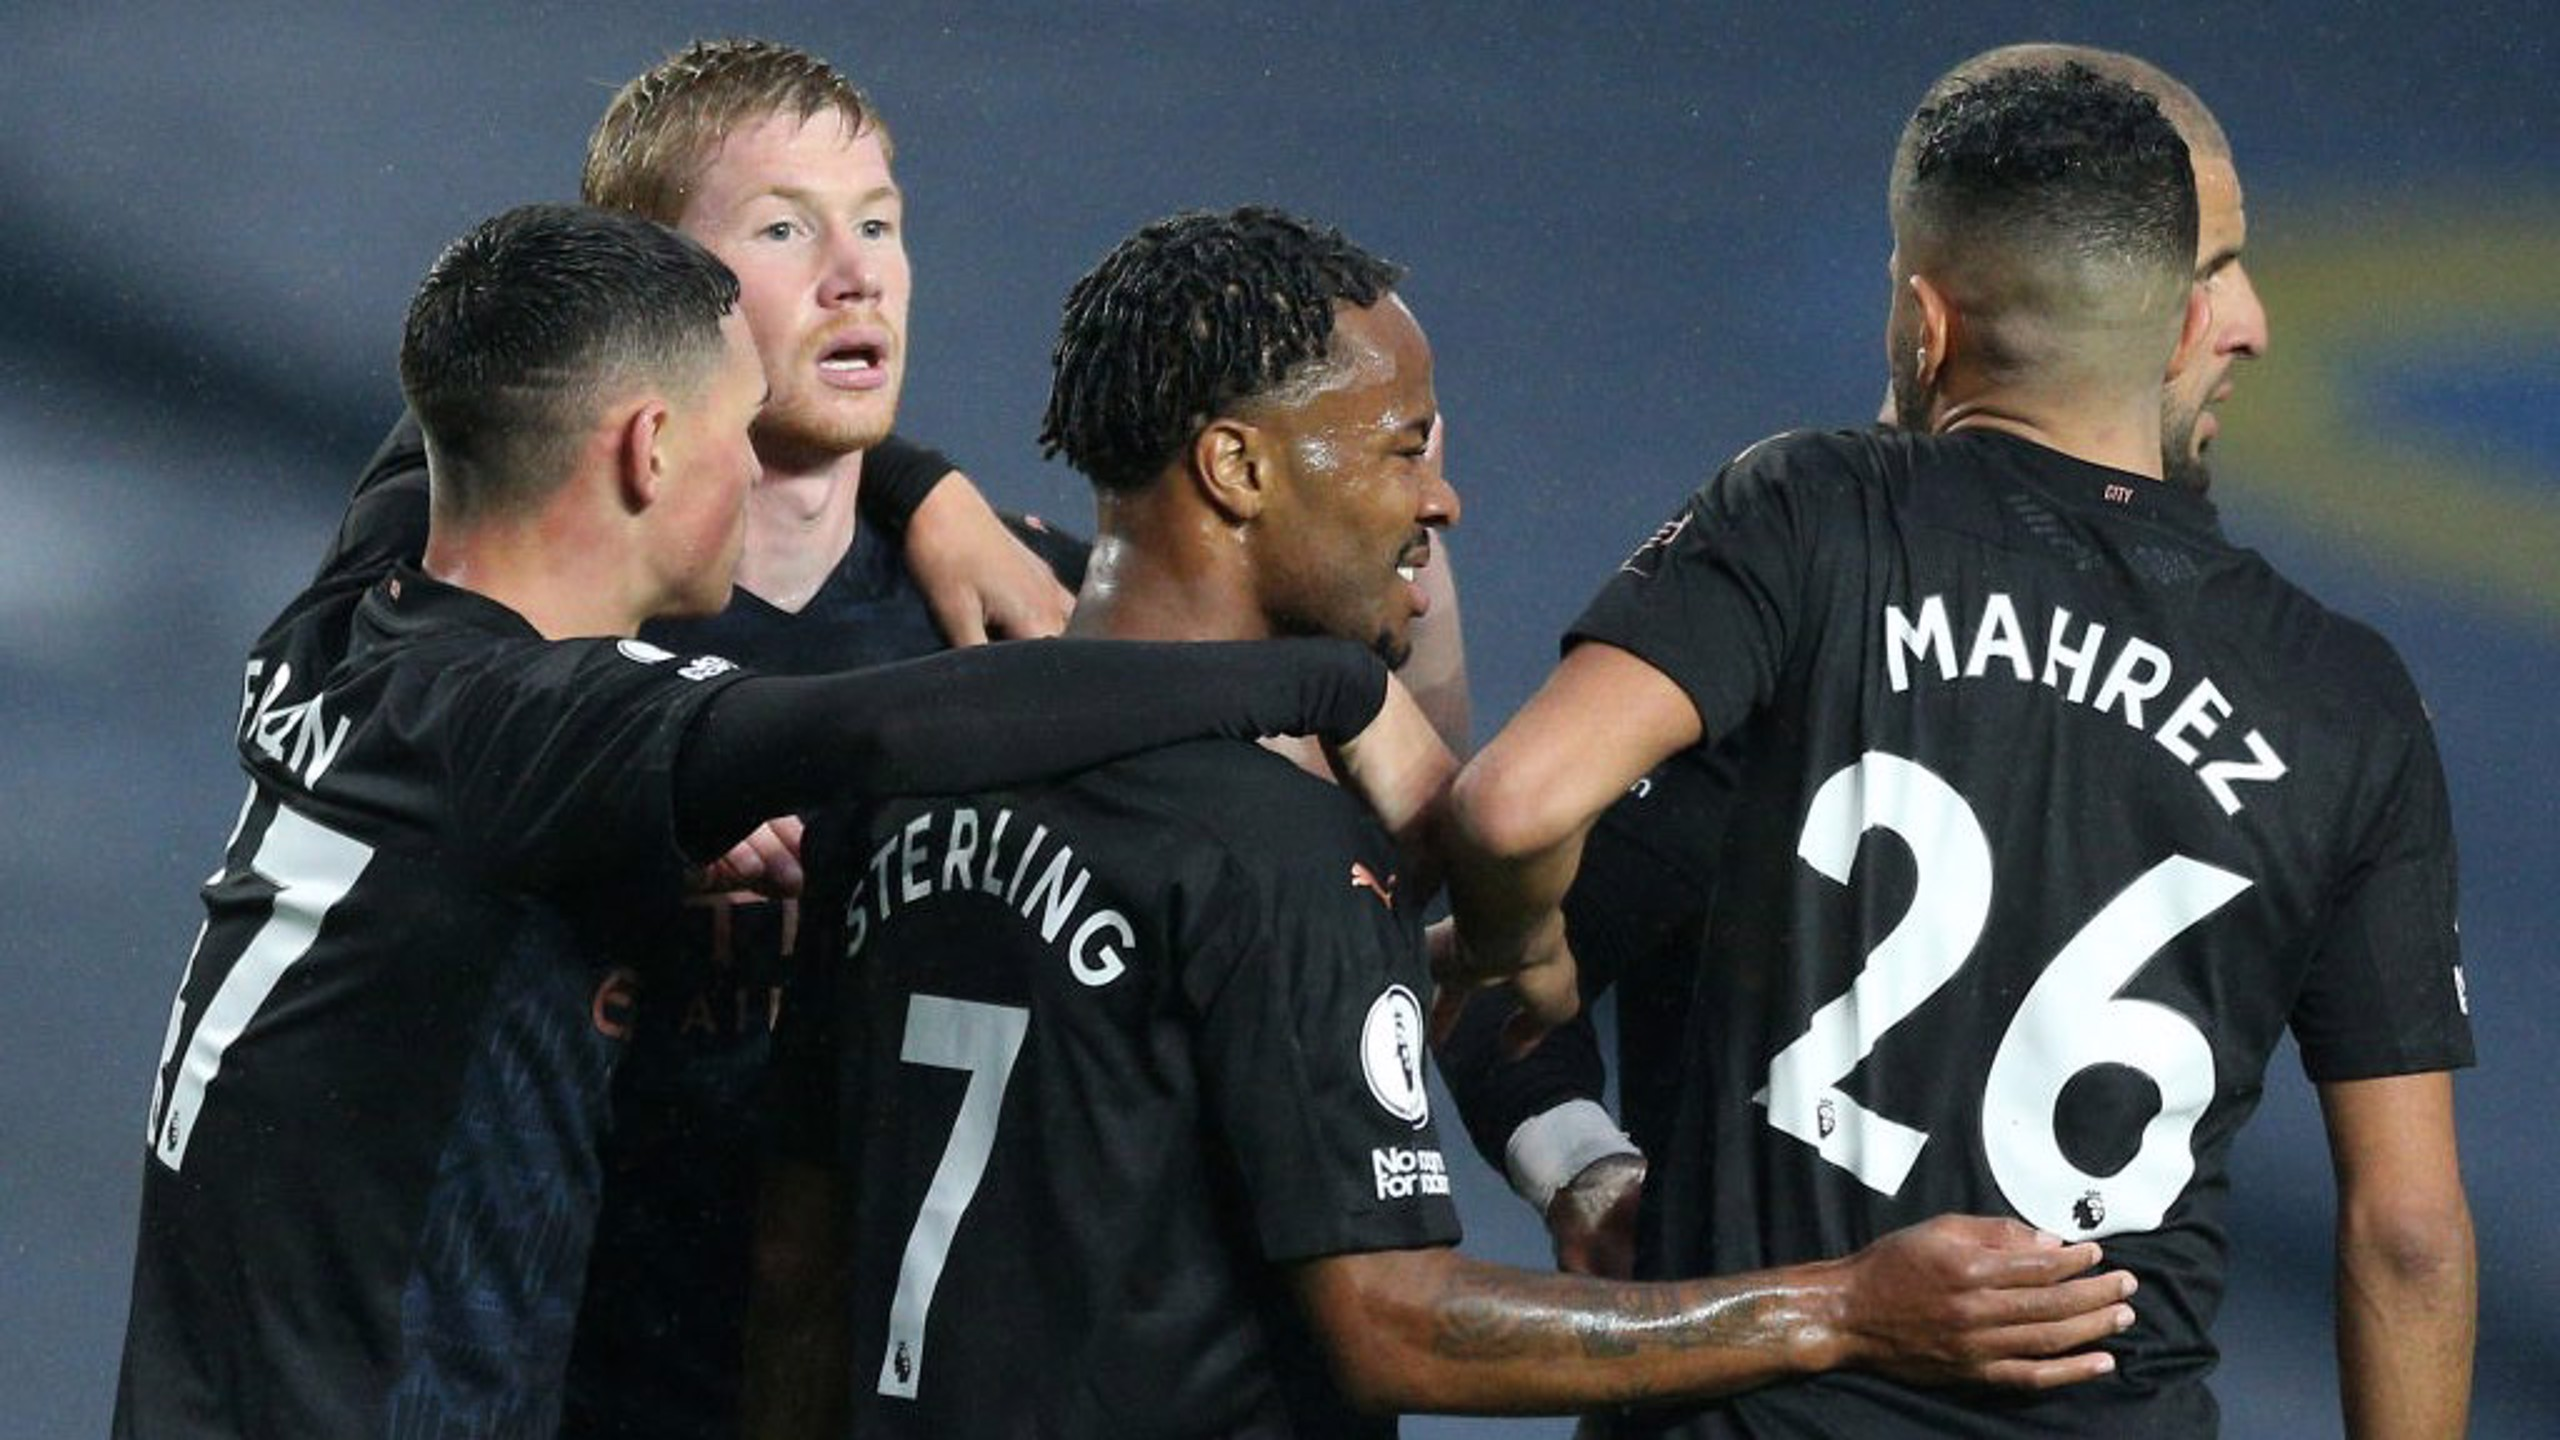 BRIGHT START: The lads congratulate Raheem after he opens the scoring